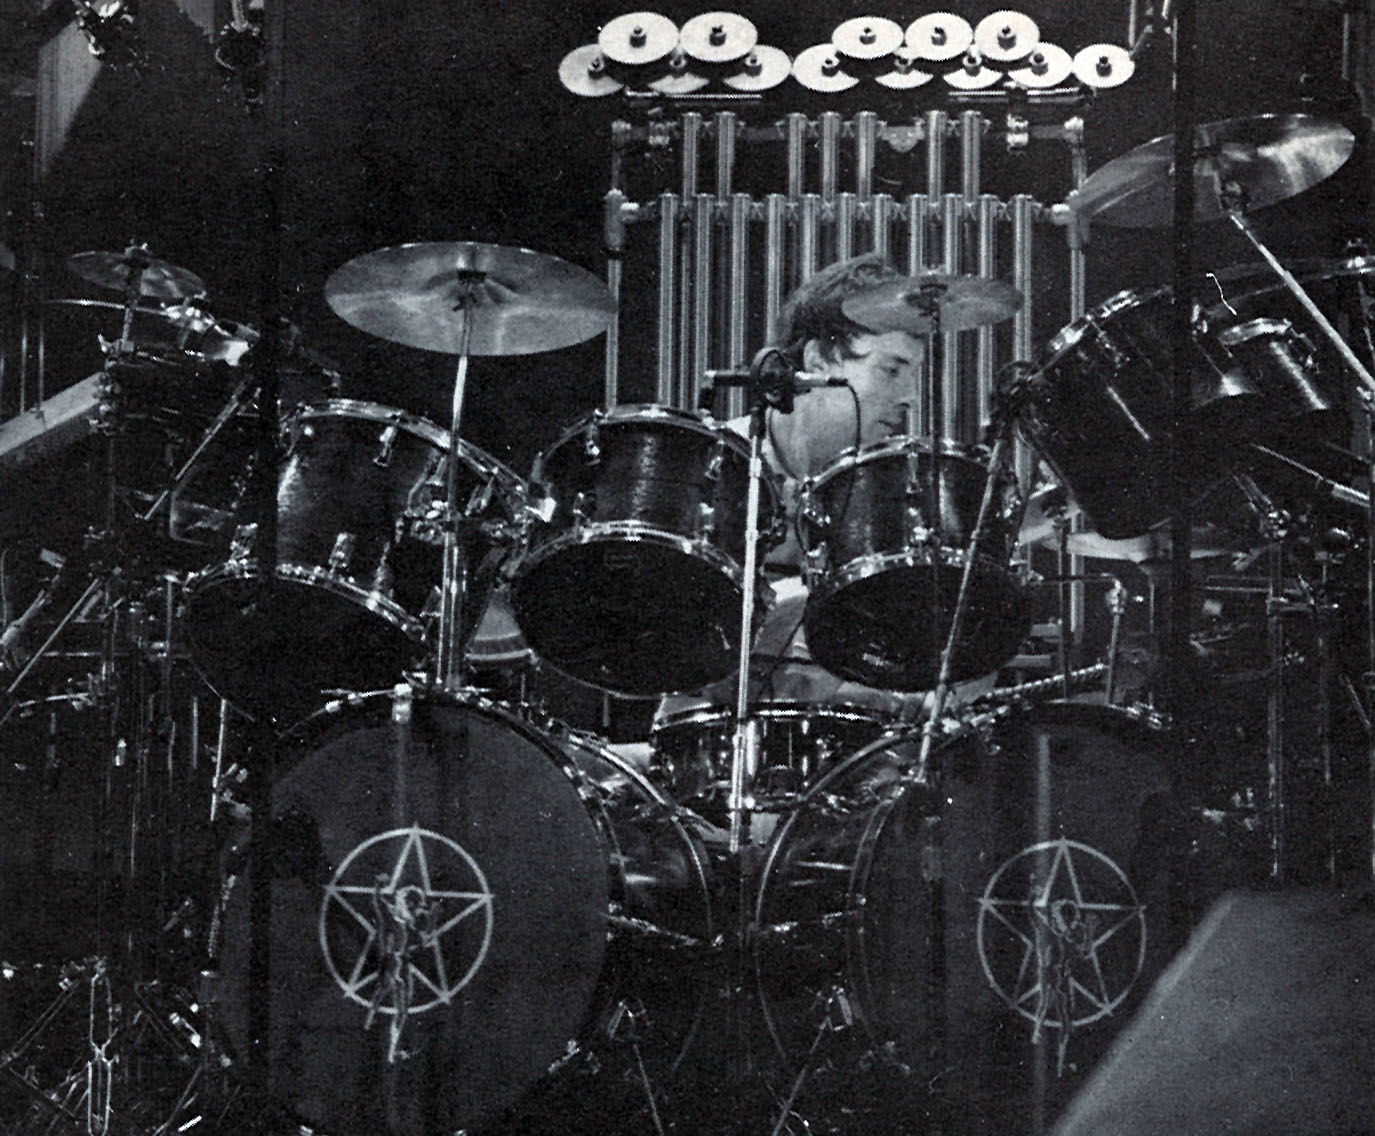 Neil Peart Moving Pictures Drums And White Diagram Of A Drum Set Including Cymbals High Hat Snare From Modern Drummer 1984